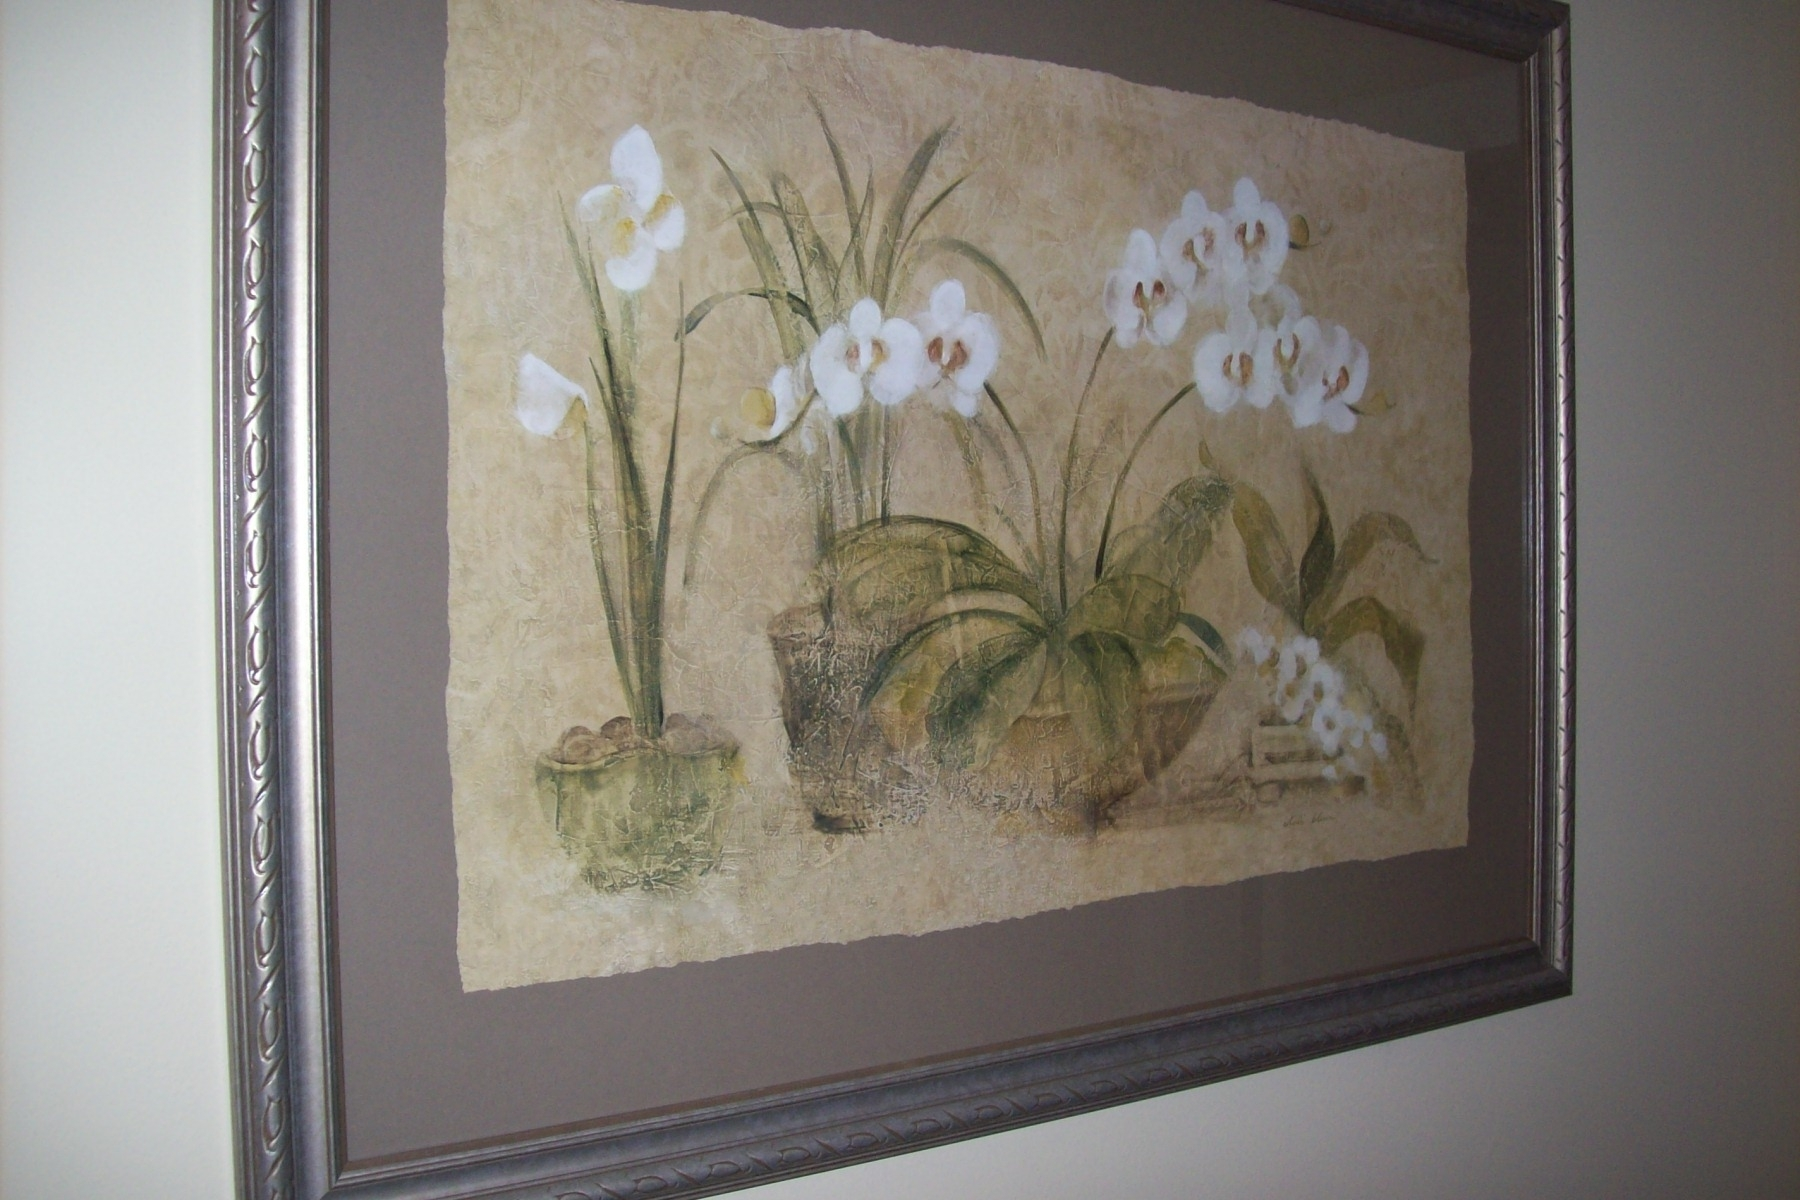 Cheri Blum Orchid Print Set–$100 | Greatstuff4Sale's Blog With Regard To Most Up To Date Cheri Blum Framed Art Prints (View 3 of 15)